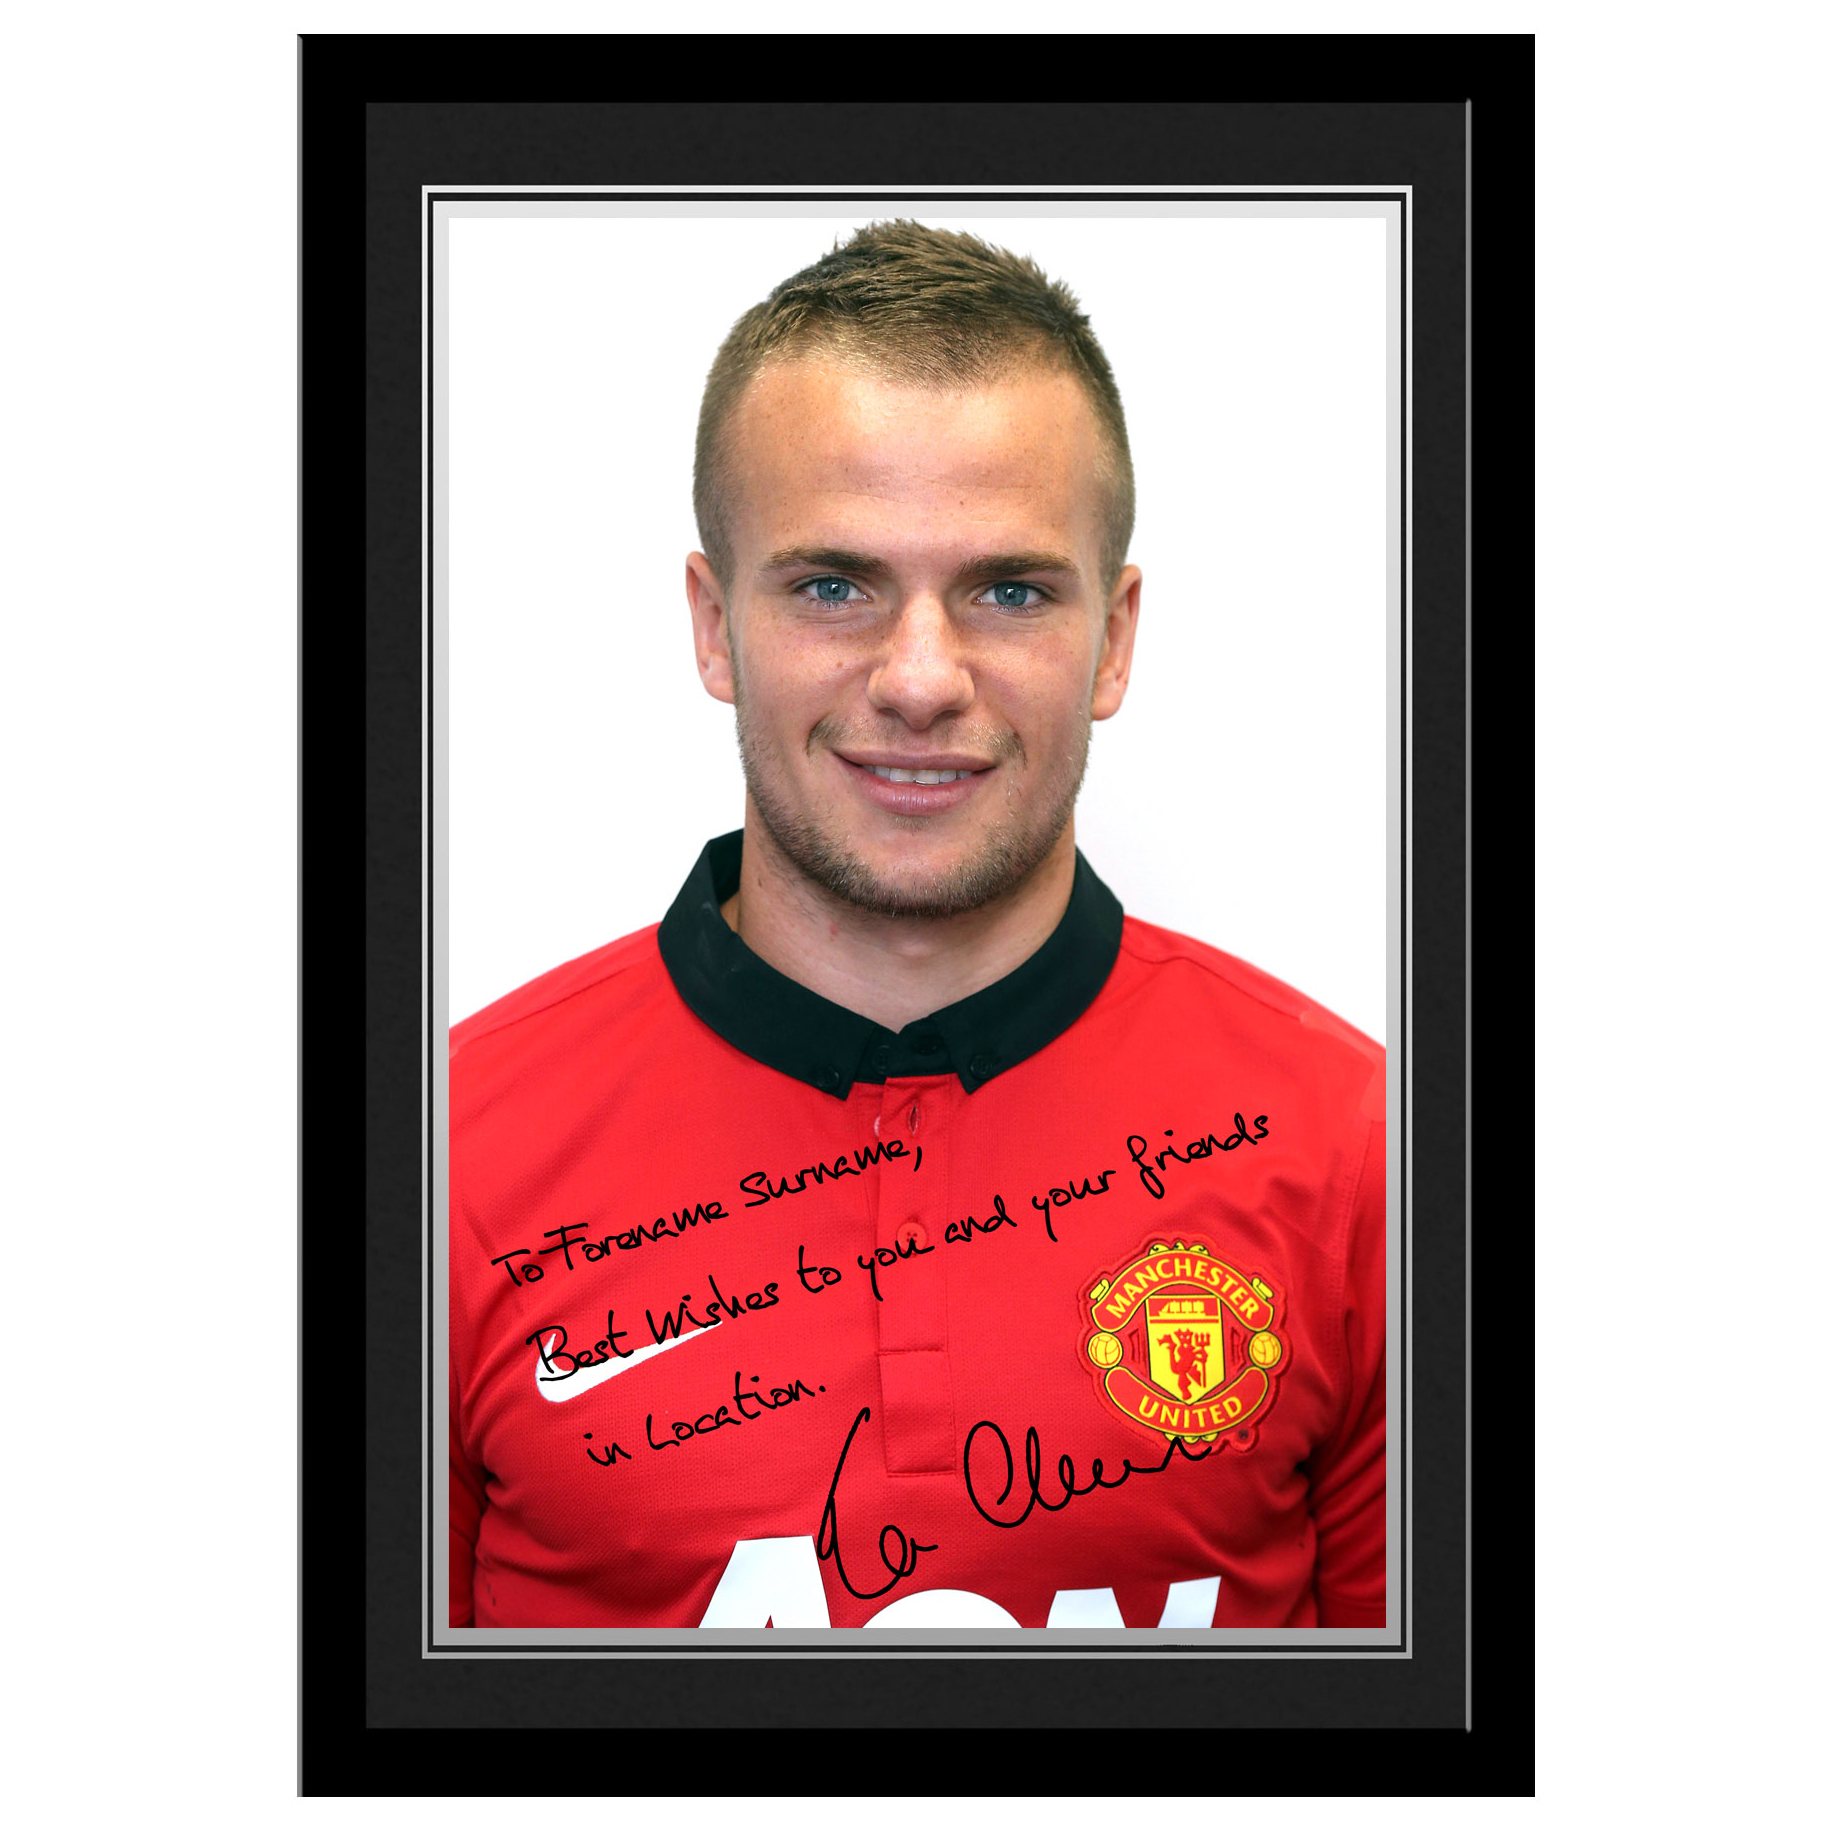 Manchester United Personalised Signature Photo Framed - Cleverley